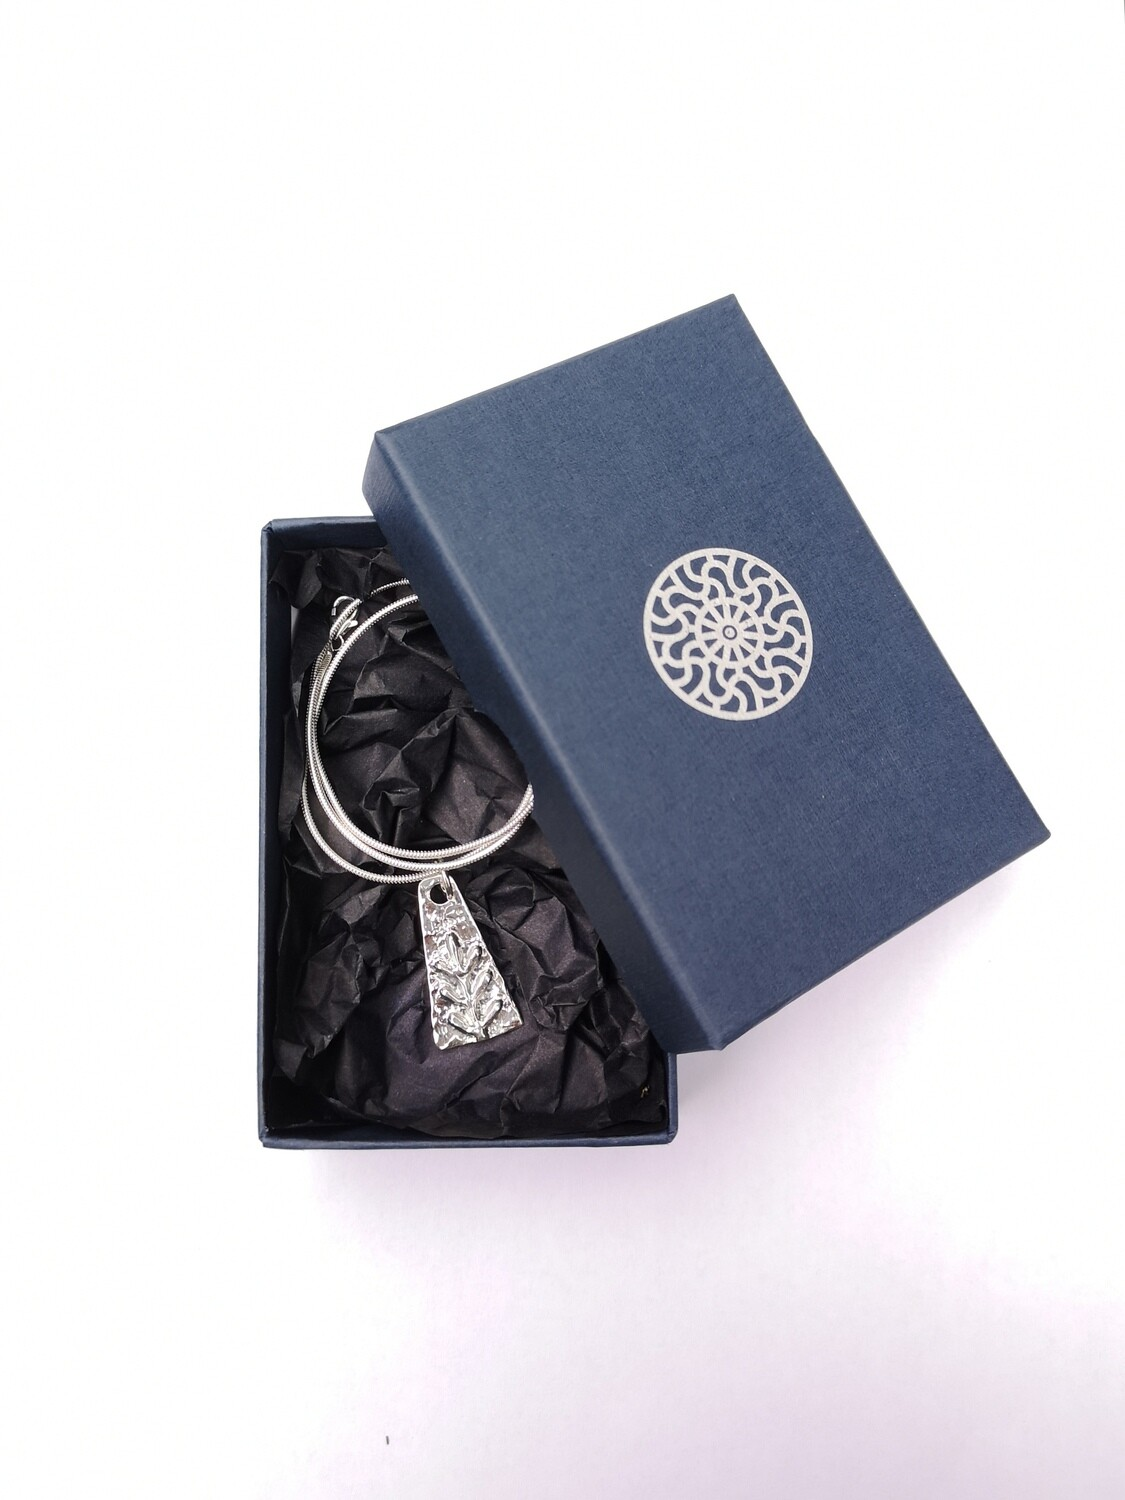 Pendant with symbol of Luck